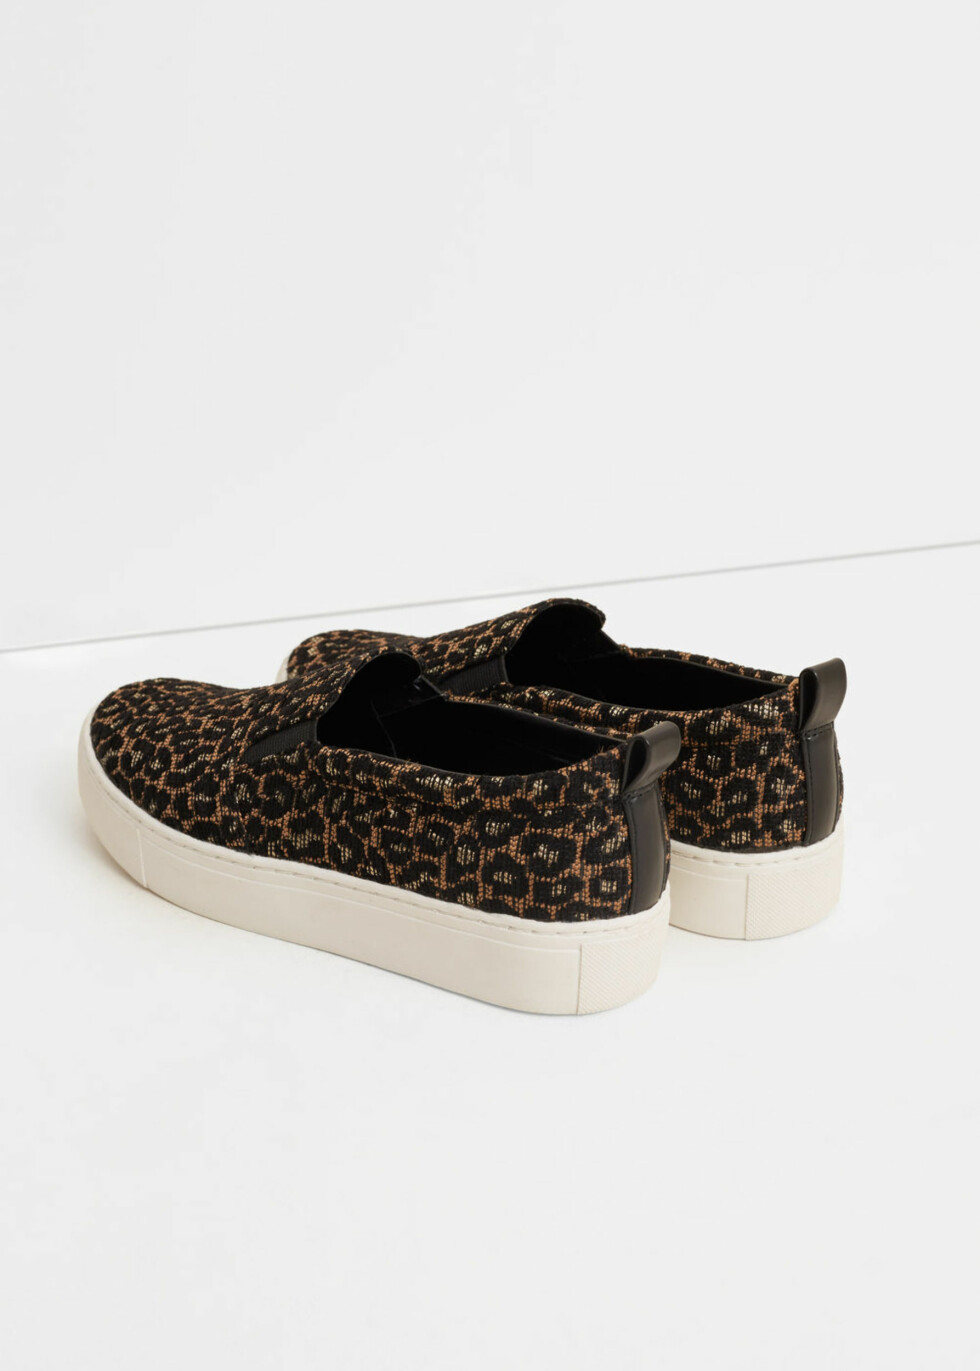 <strong>Sneakers fra Mango | kr 349 | http:</strong>//shop.mango.com/NO/p1/damer/tilbeh%C3%B8r/sko/joggesko/sneakers-med-leopardprint/?id=73063526_99&n=1&s=accesorios.zapatos&ts=1474452006311